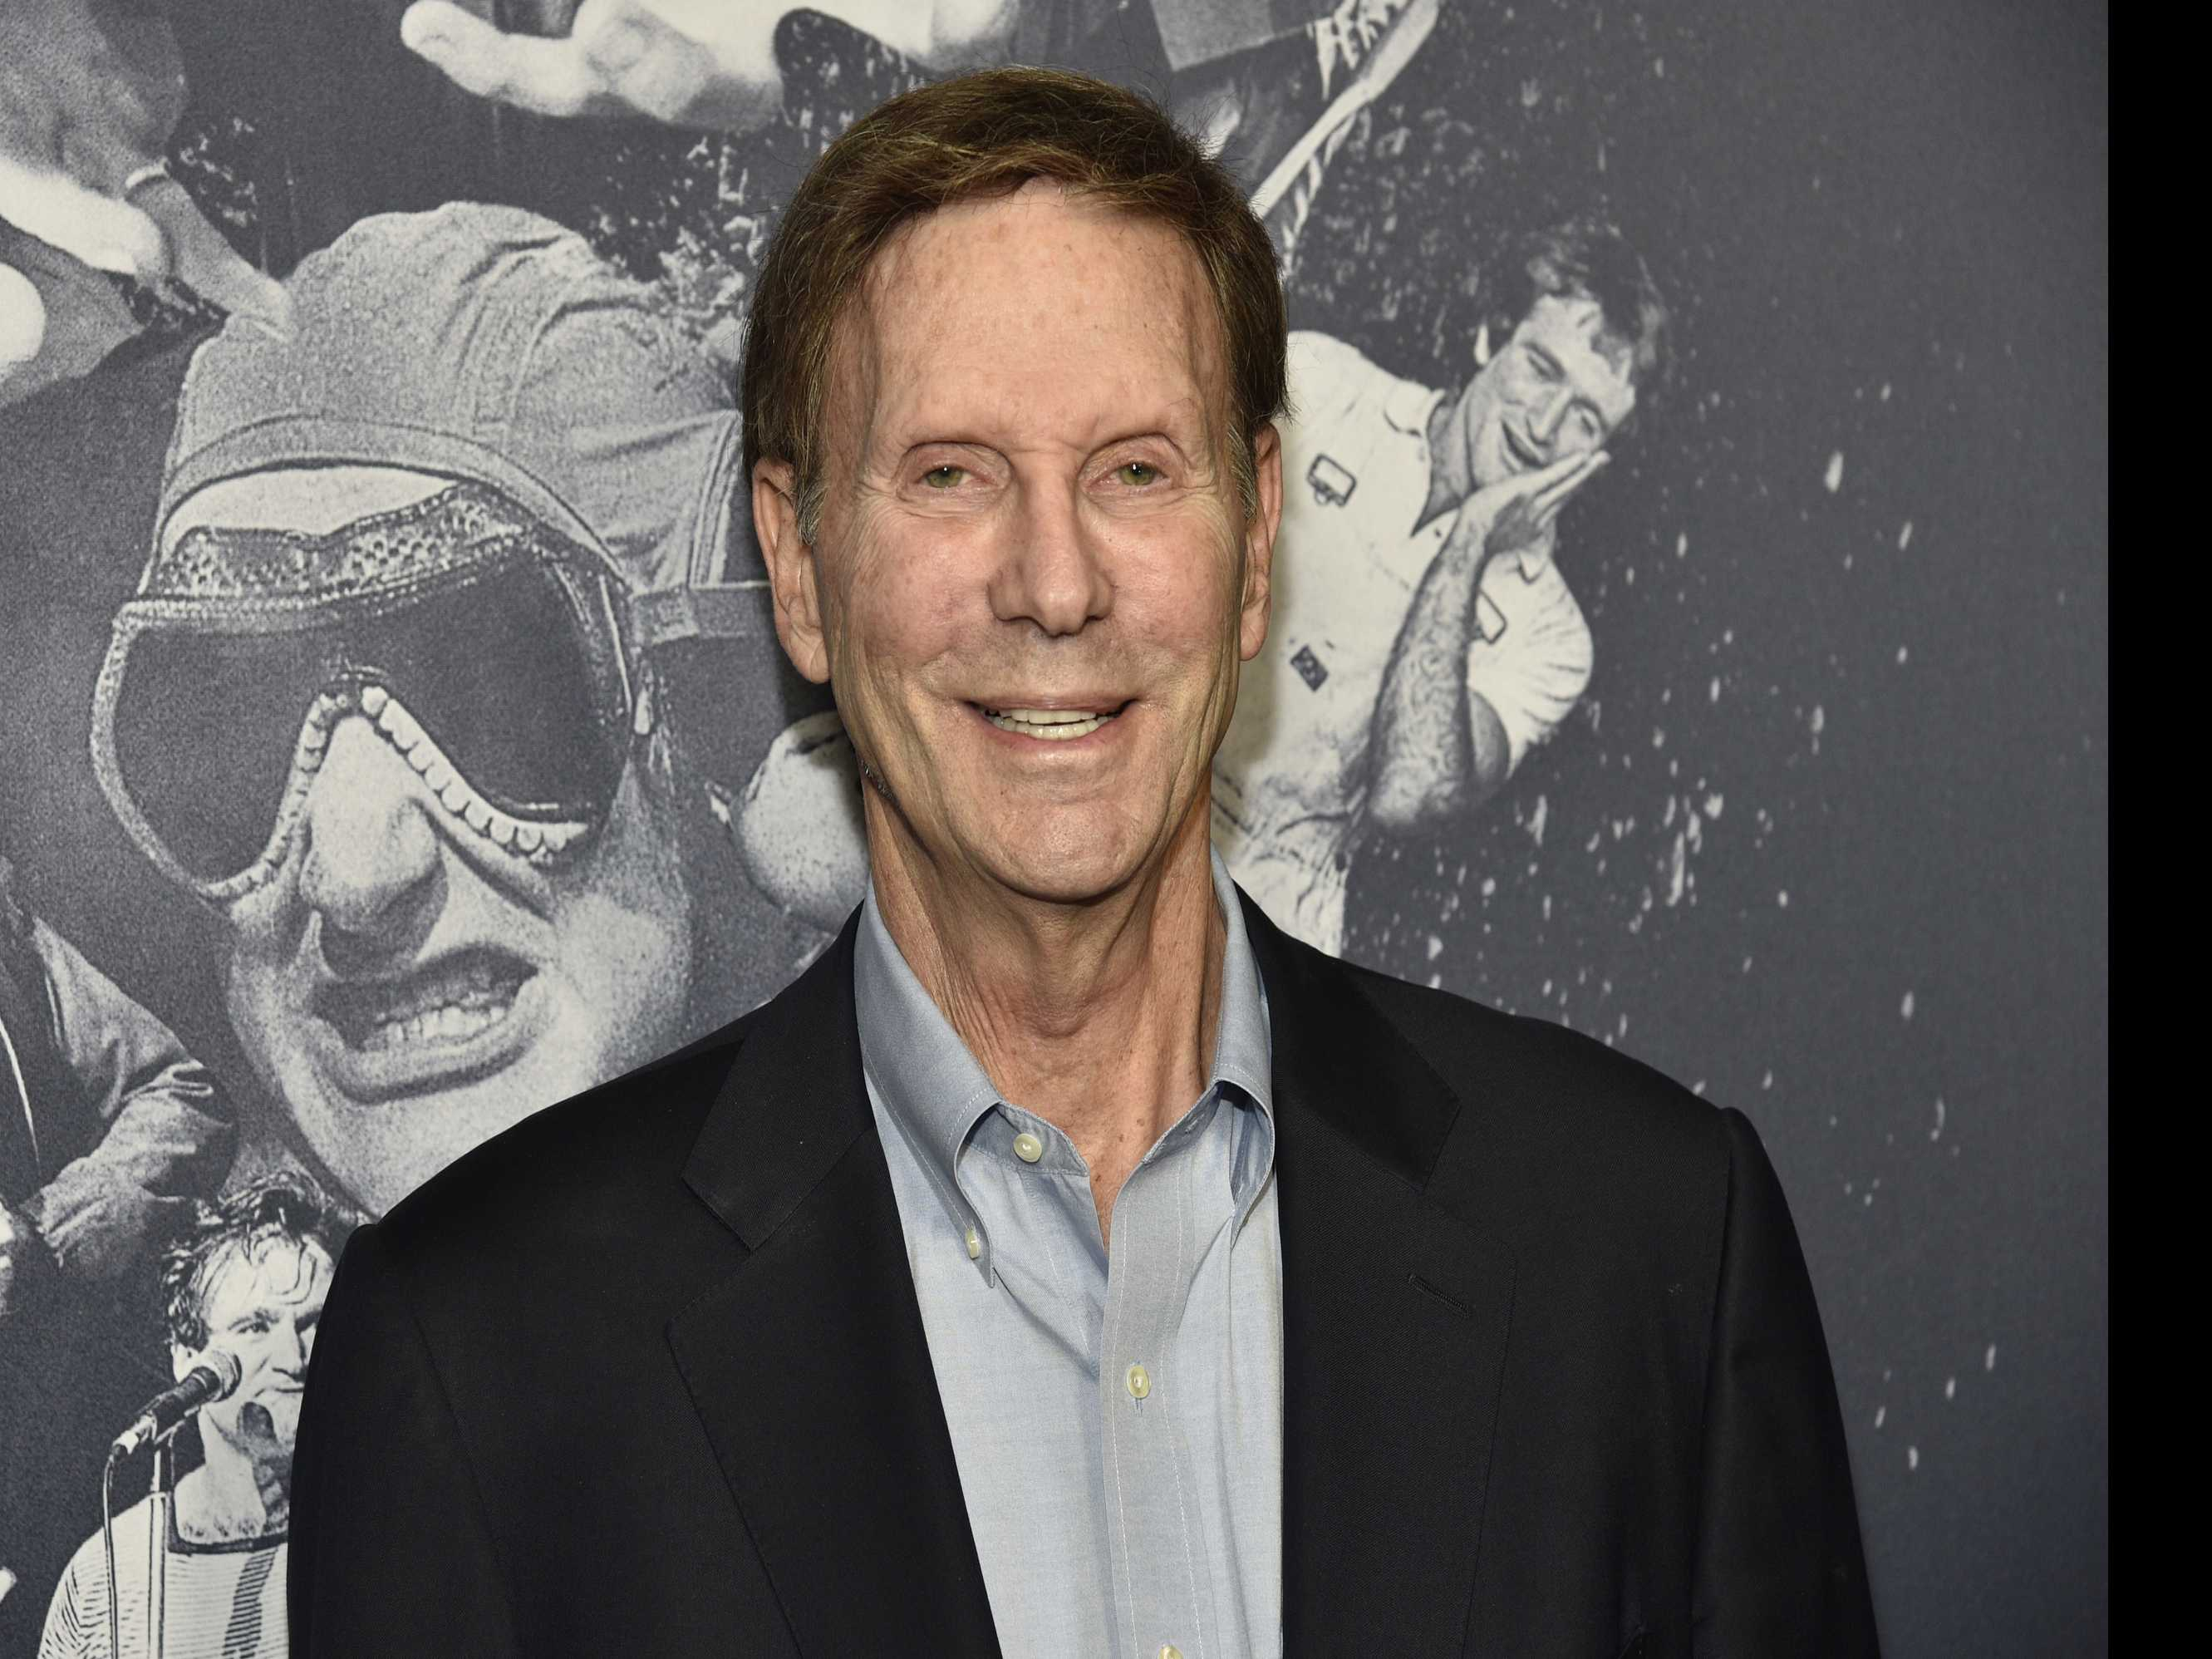 Bob Einstein of Super Dave and 'Curb' Fame Dies at 76